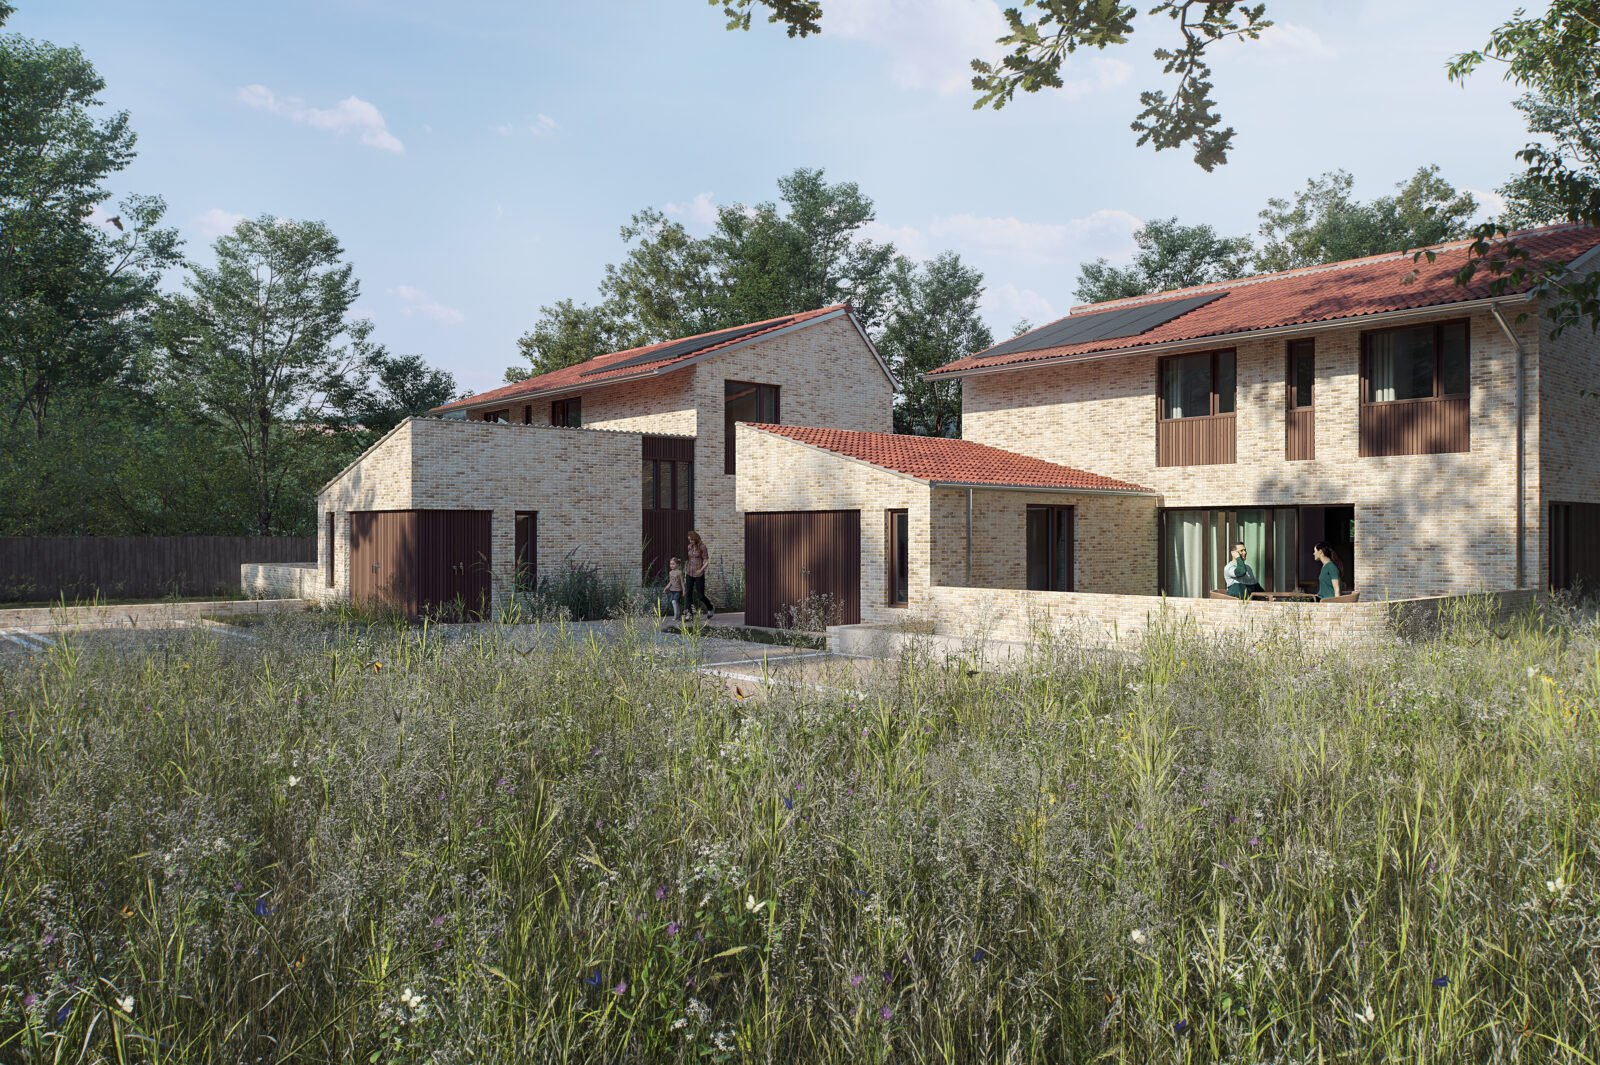 Residential Development of 5 eco-houses in Hampshire